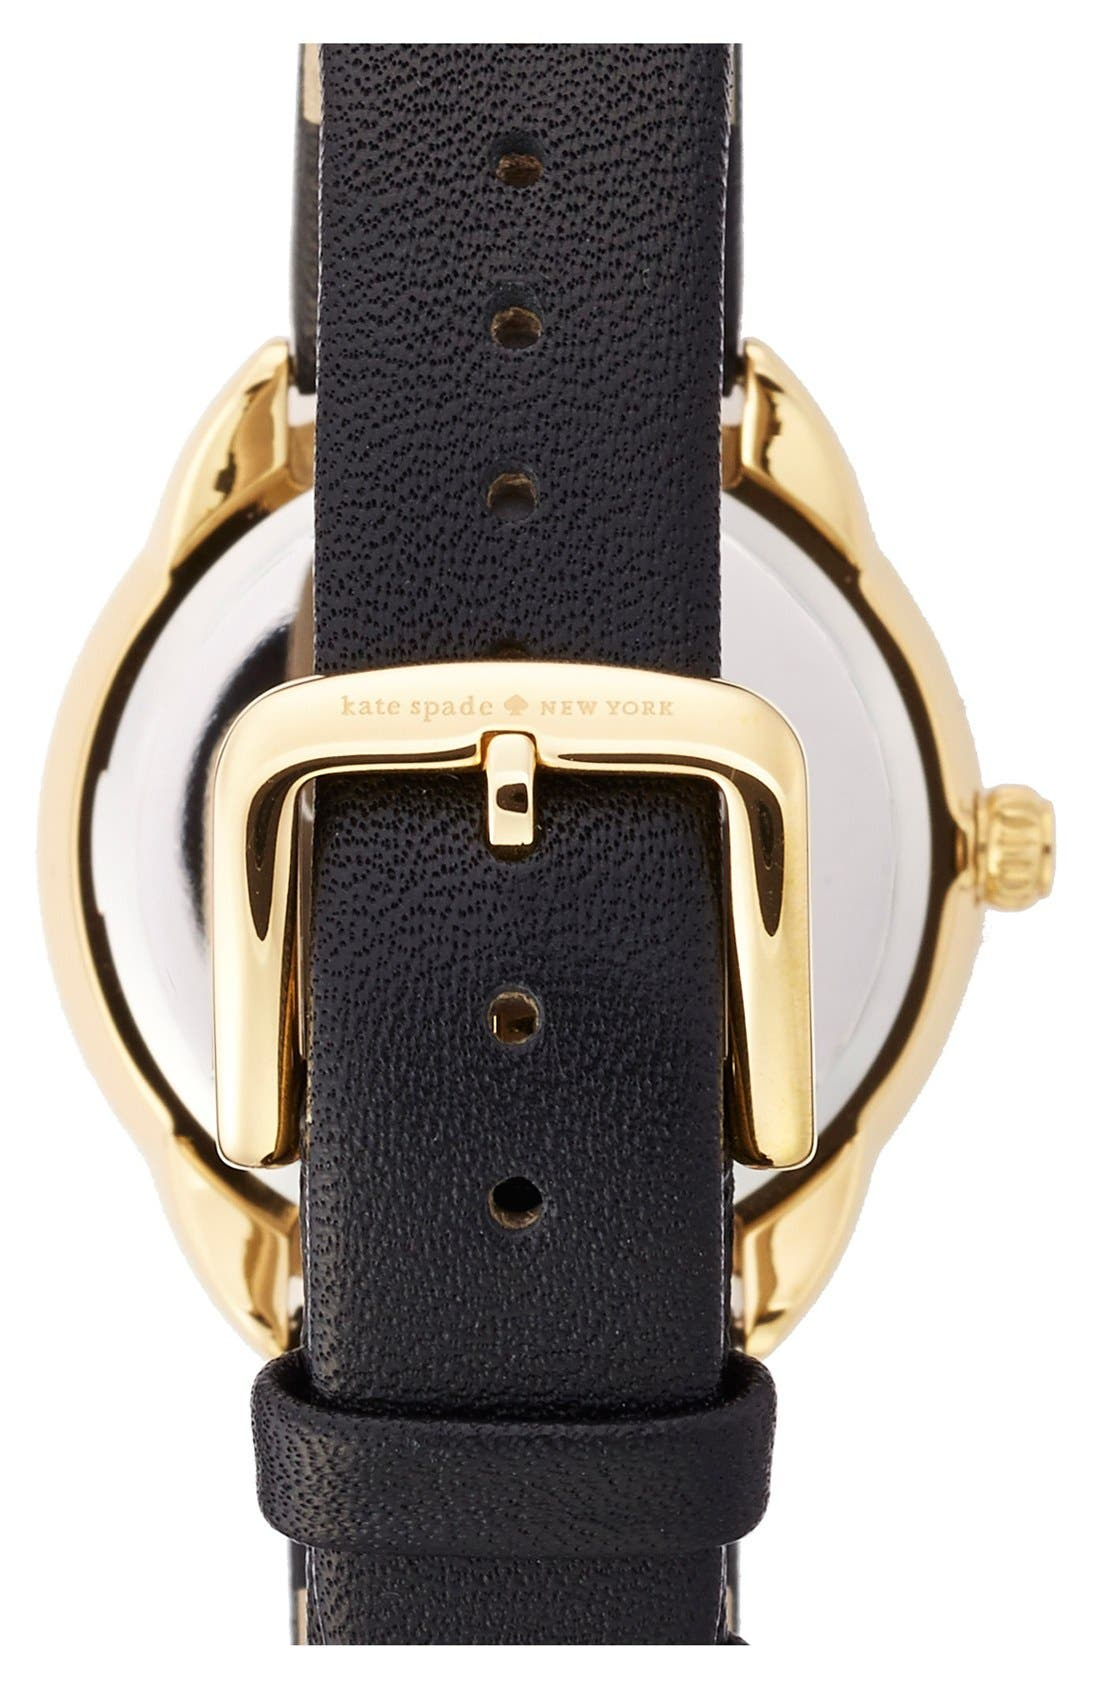 KATE SPADE NEW YORK, 'crosstown' leather strap watch, 34mm, Alternate thumbnail 2, color, 001